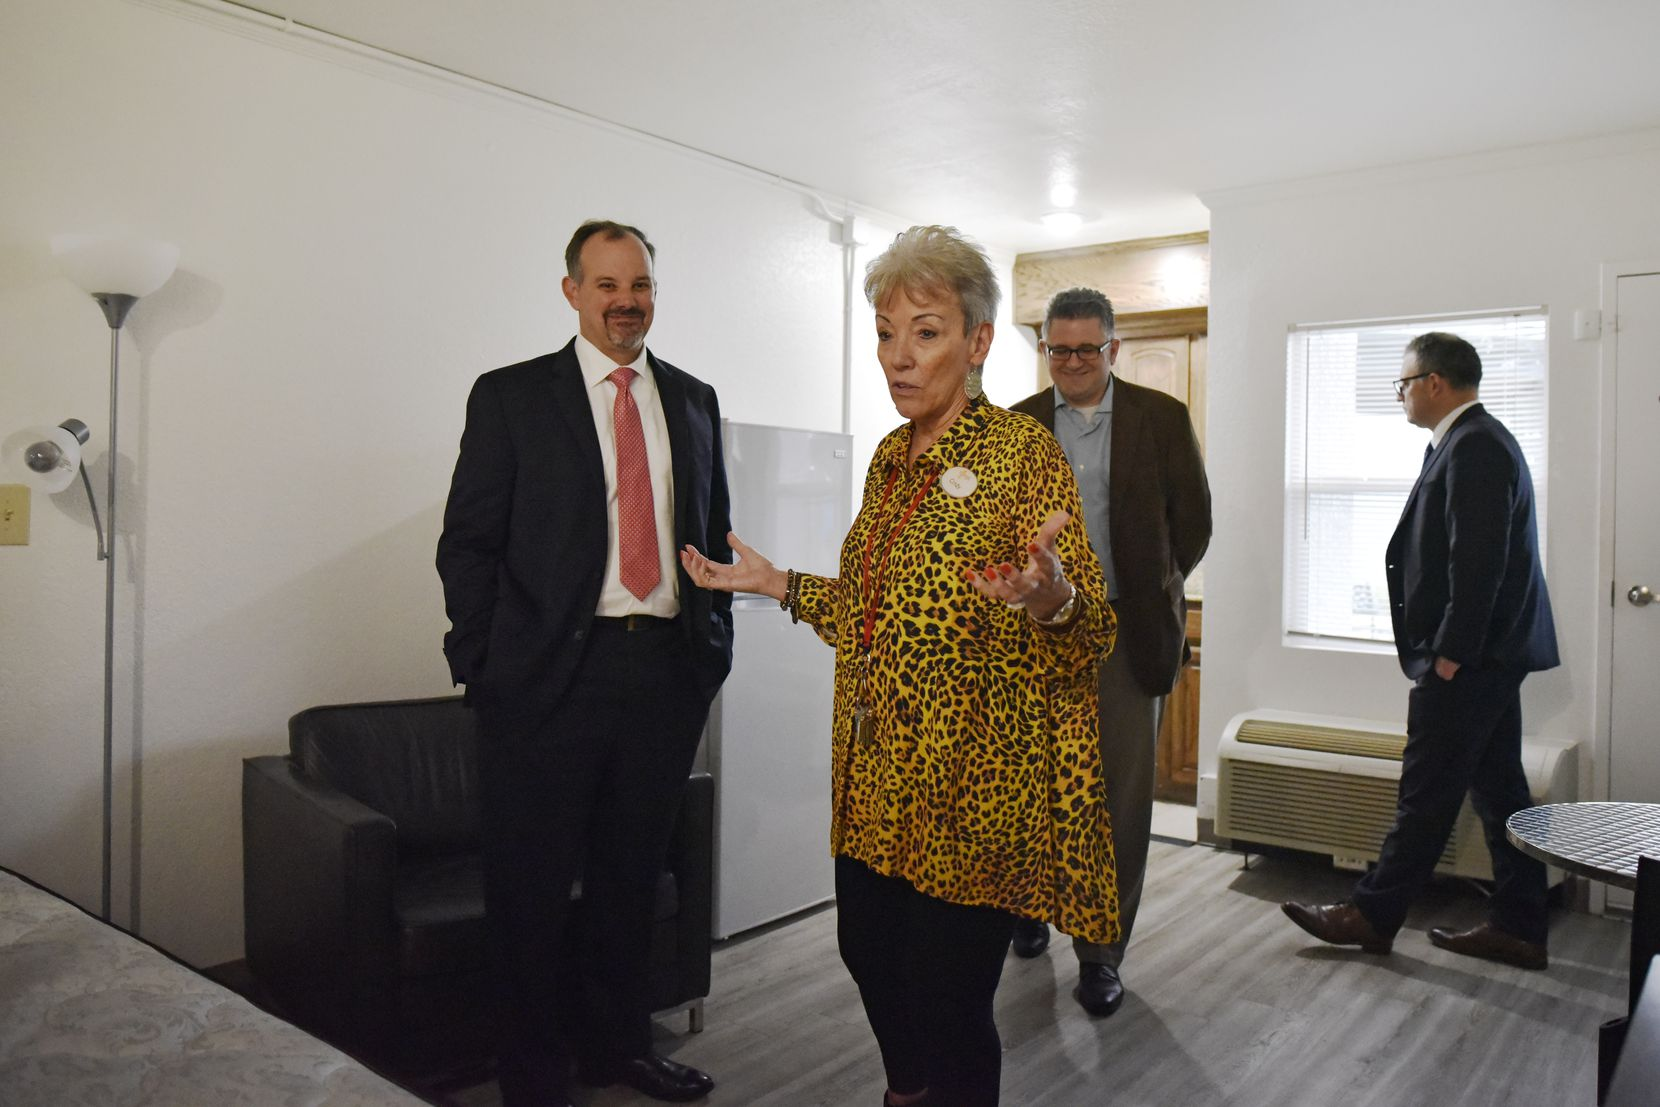 Cindy Montgomery, the property manager at St. Jude Center, tells visitors that residents compare their bedrooms at the complex to rooms at the Four Seasons.